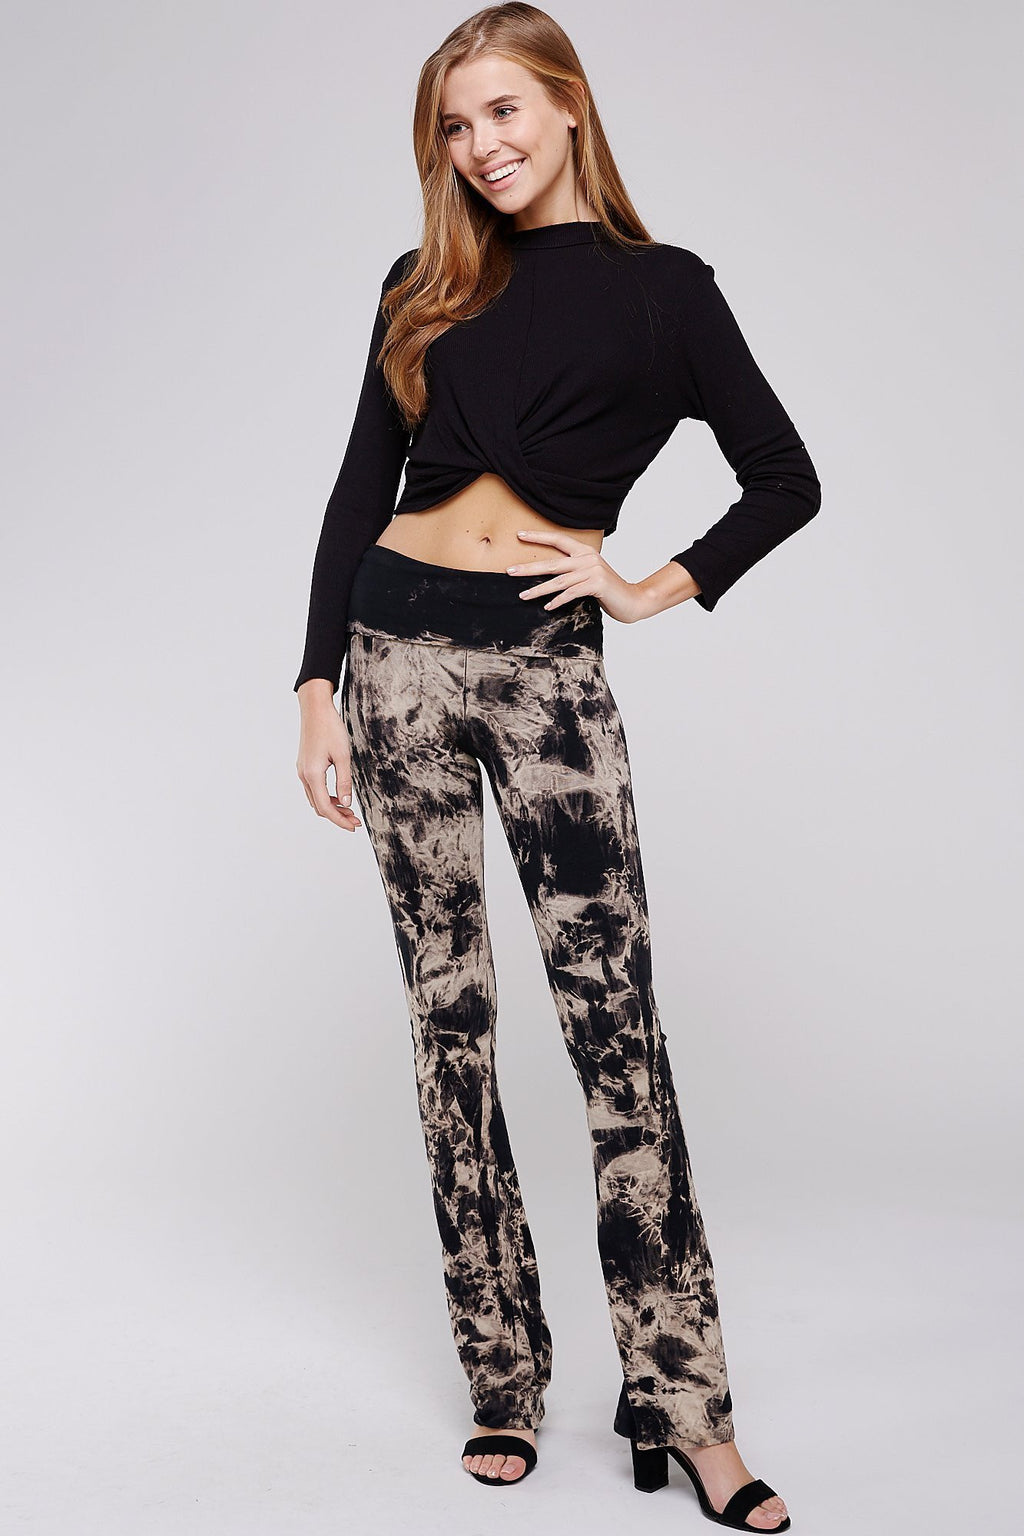 Wholesale Clothing, Online Wholesale Clothing, Women Clothing, Bohemian, Free People, tiedye, specialty wash, wholesale seller, wholesale women clothing shop, gypsy look, USA made, URBAN X APPAREL-PANTS-UPC3009B, fashiontrend2019